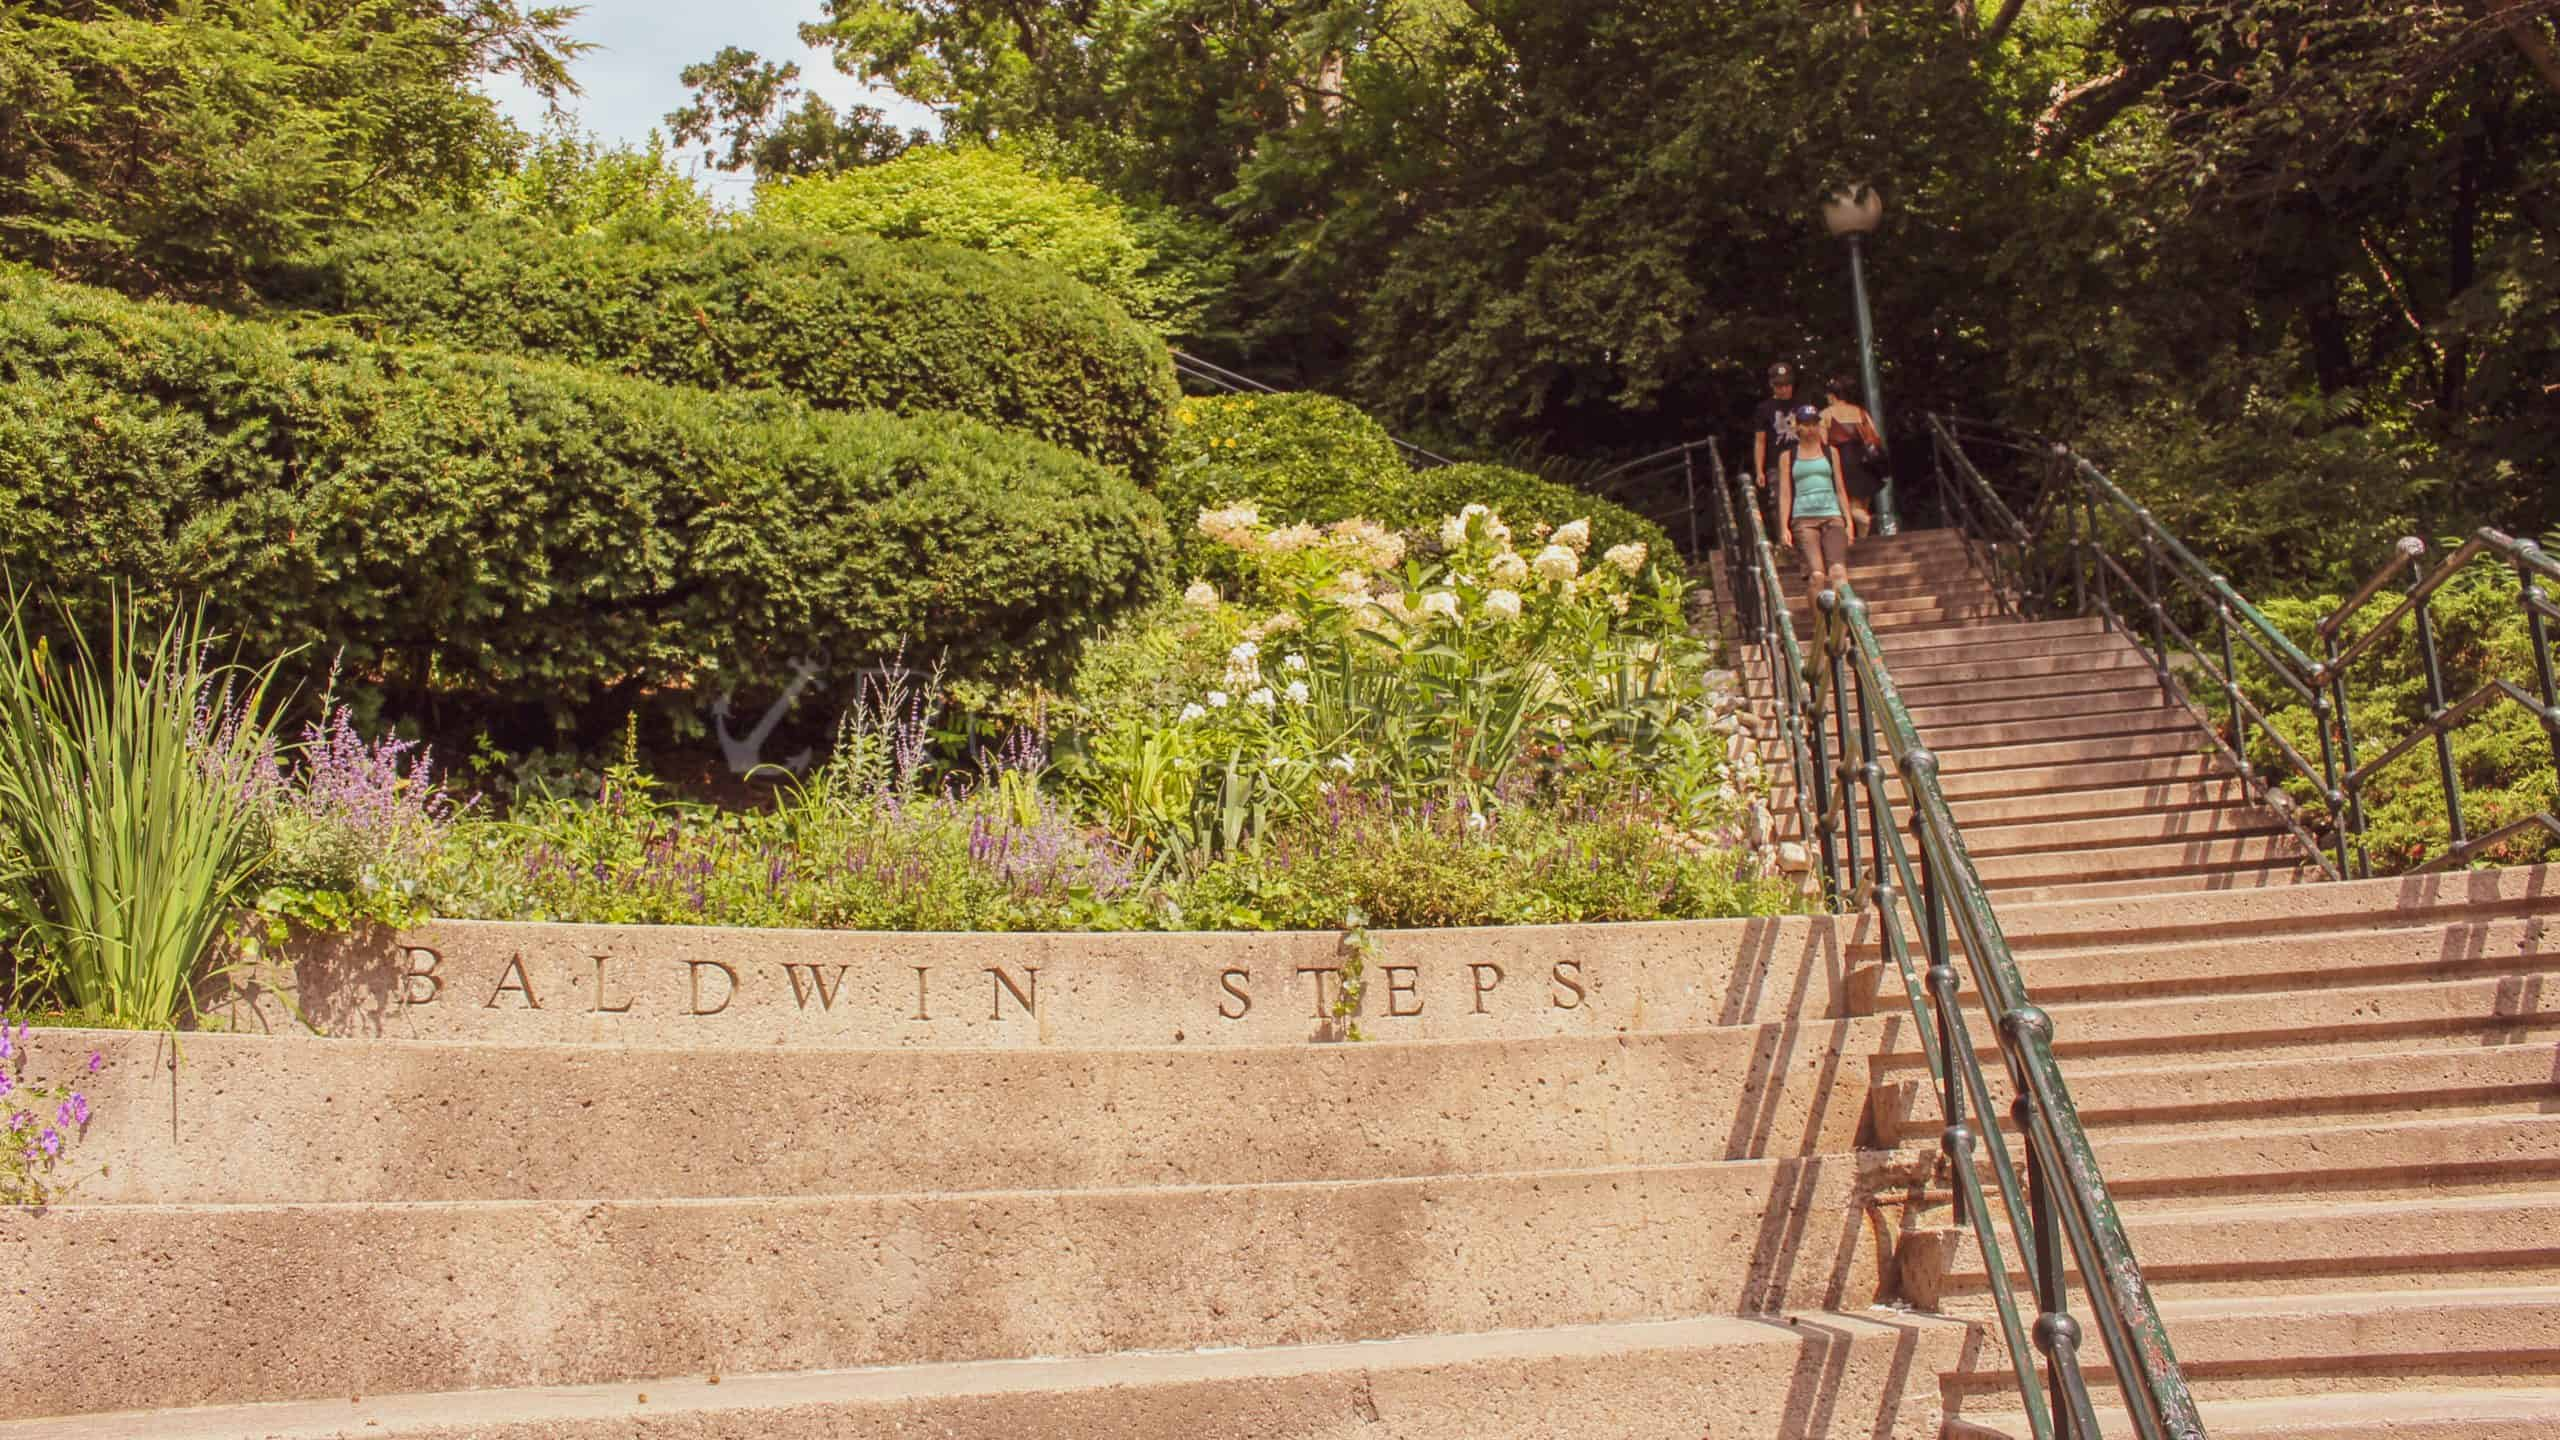 toronto places to visit baldwin steps